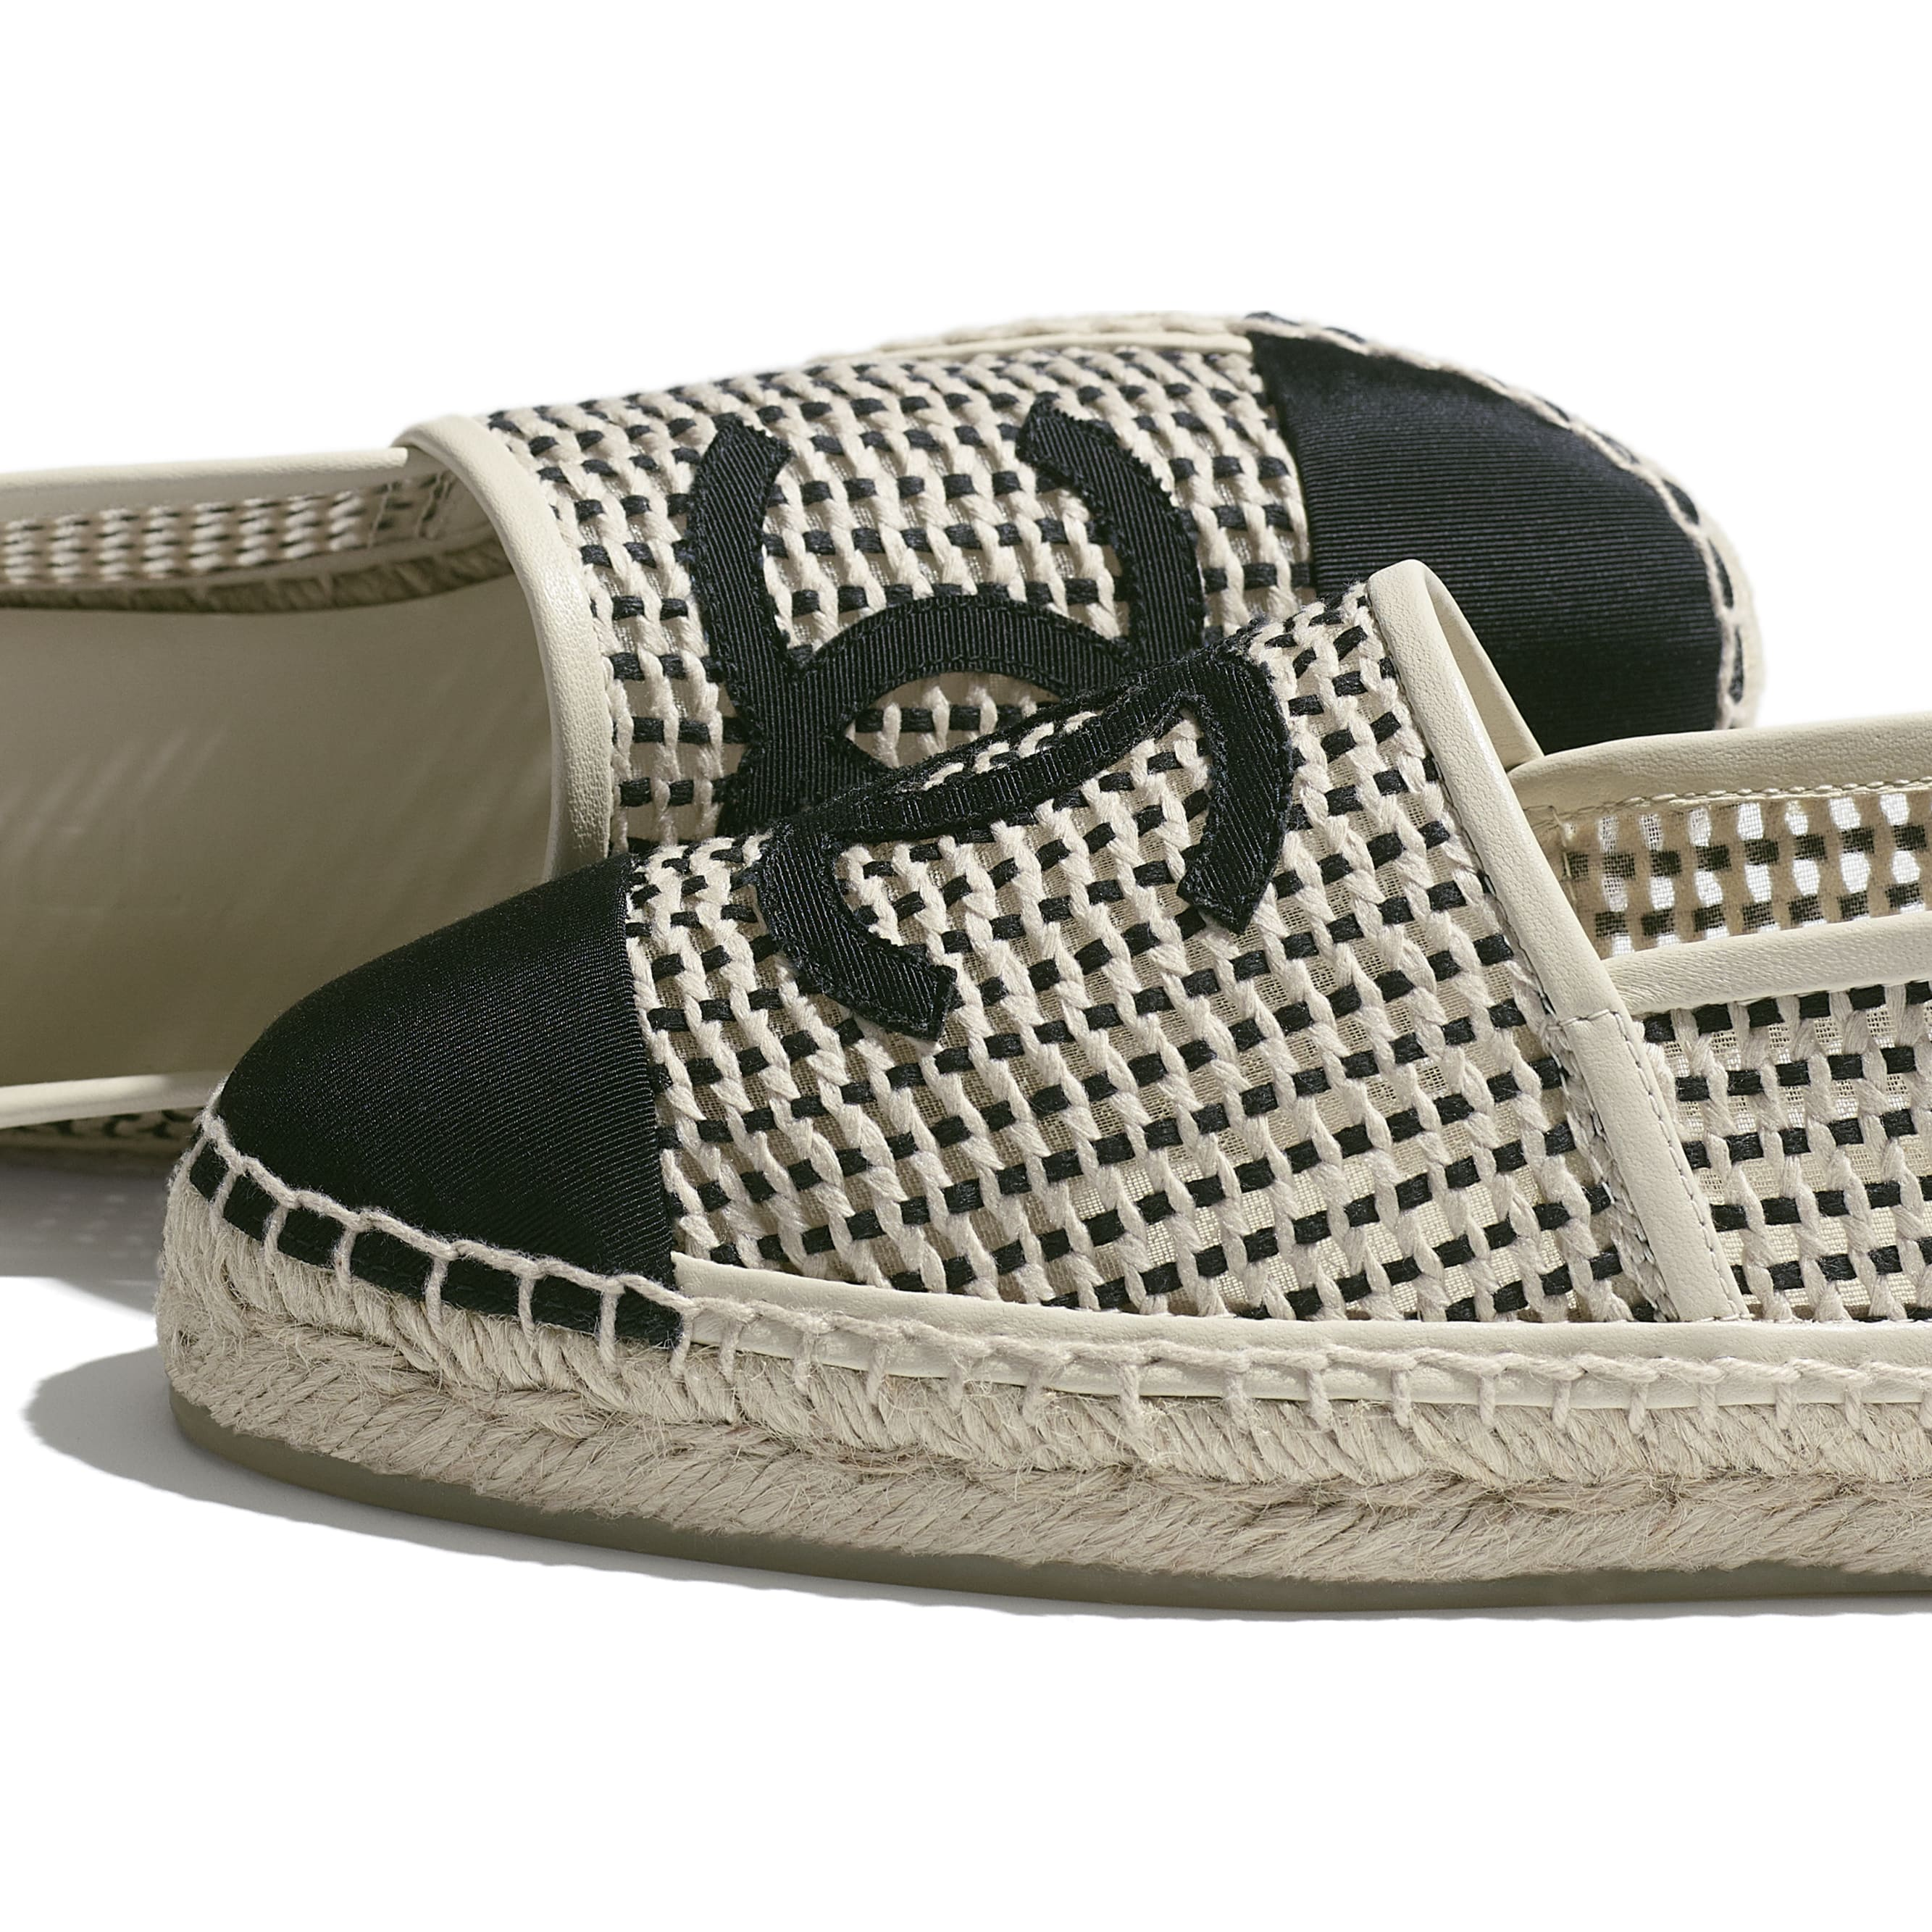 Espadrilles - Beige & Black - Mesh & Grosgrain - CHANEL - Extra view - see standard sized version